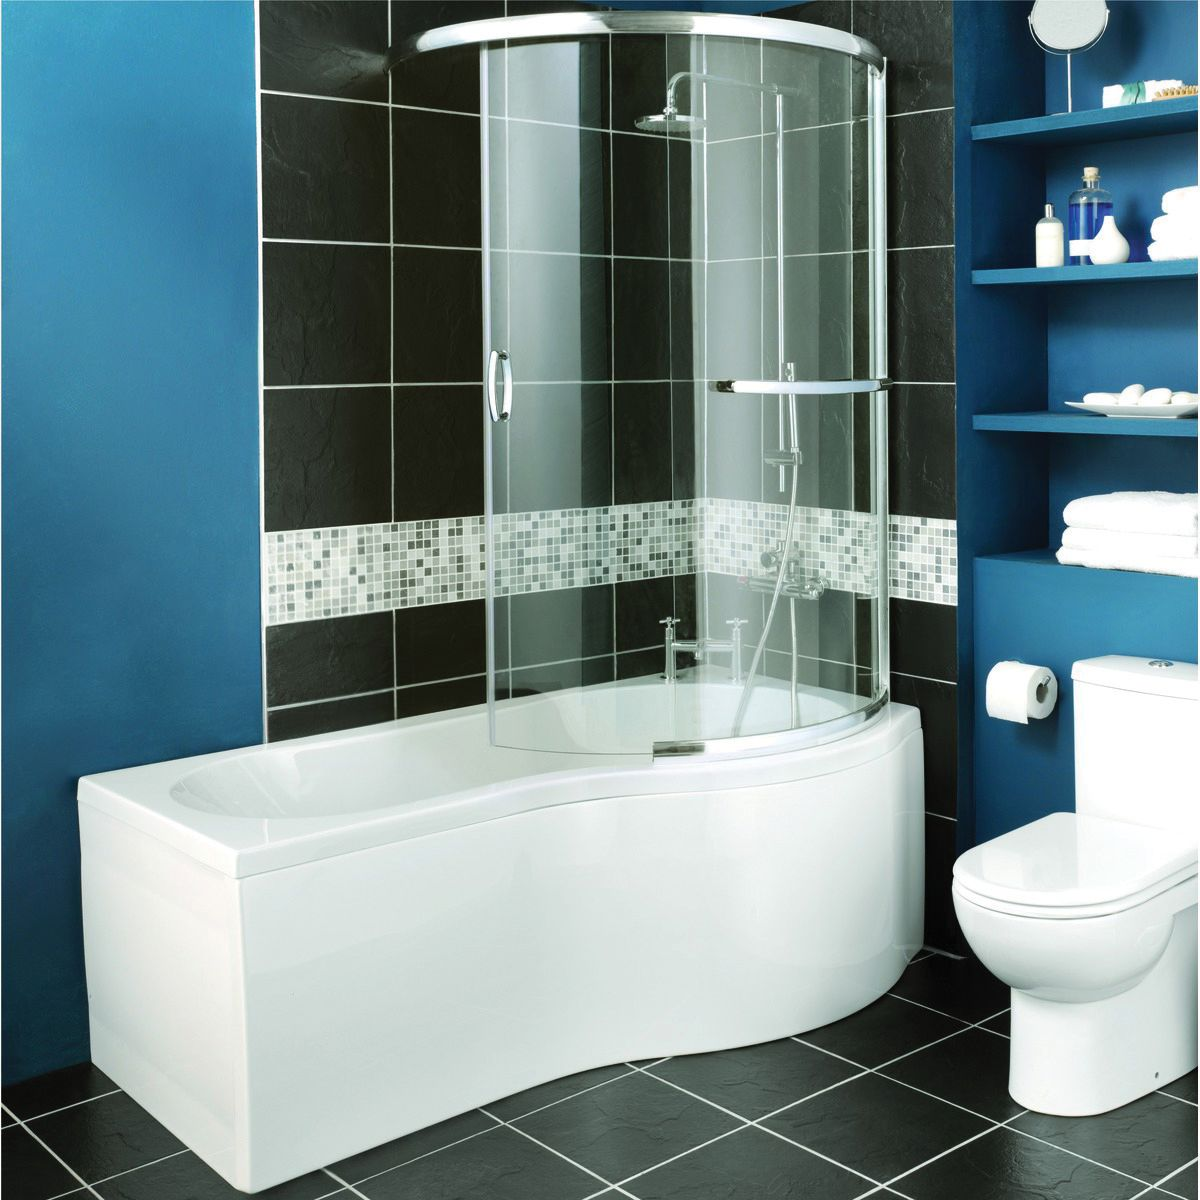 Wickes Shower Baths wickes two panel sliding shower bath screen right hand | wickes.co.uk